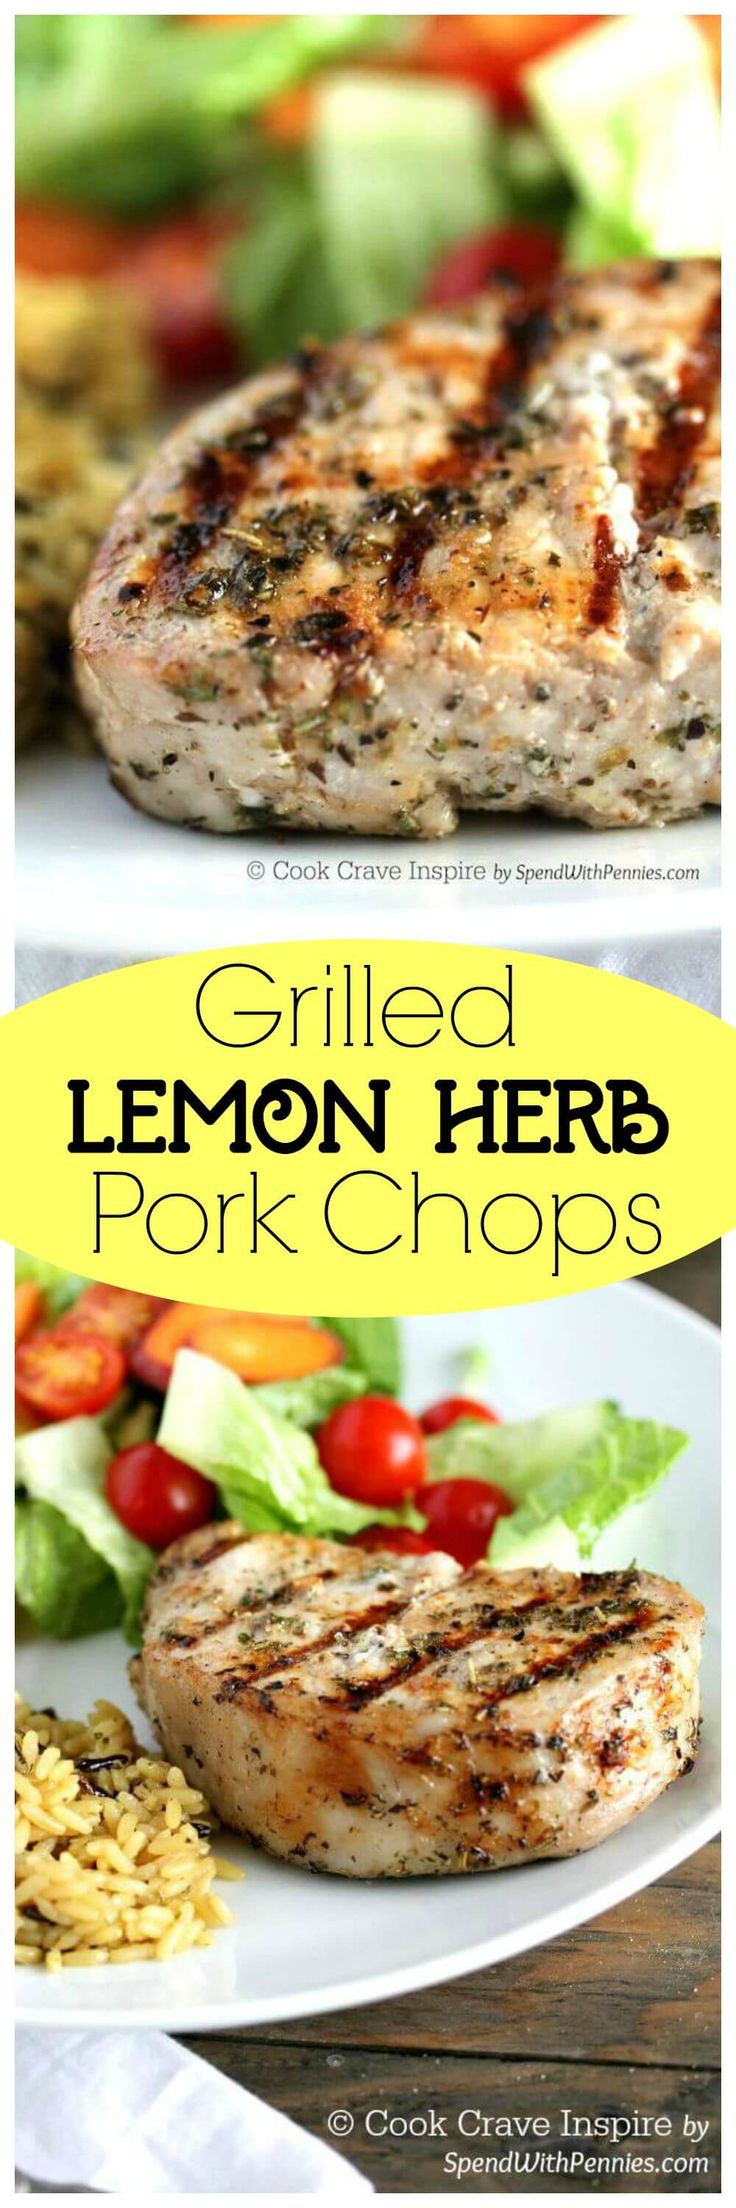 Best 25 Pork Chop Recipes Ideas On Pinterest Chop Meat Recipes Pork Chop And Pork Chop Marinade